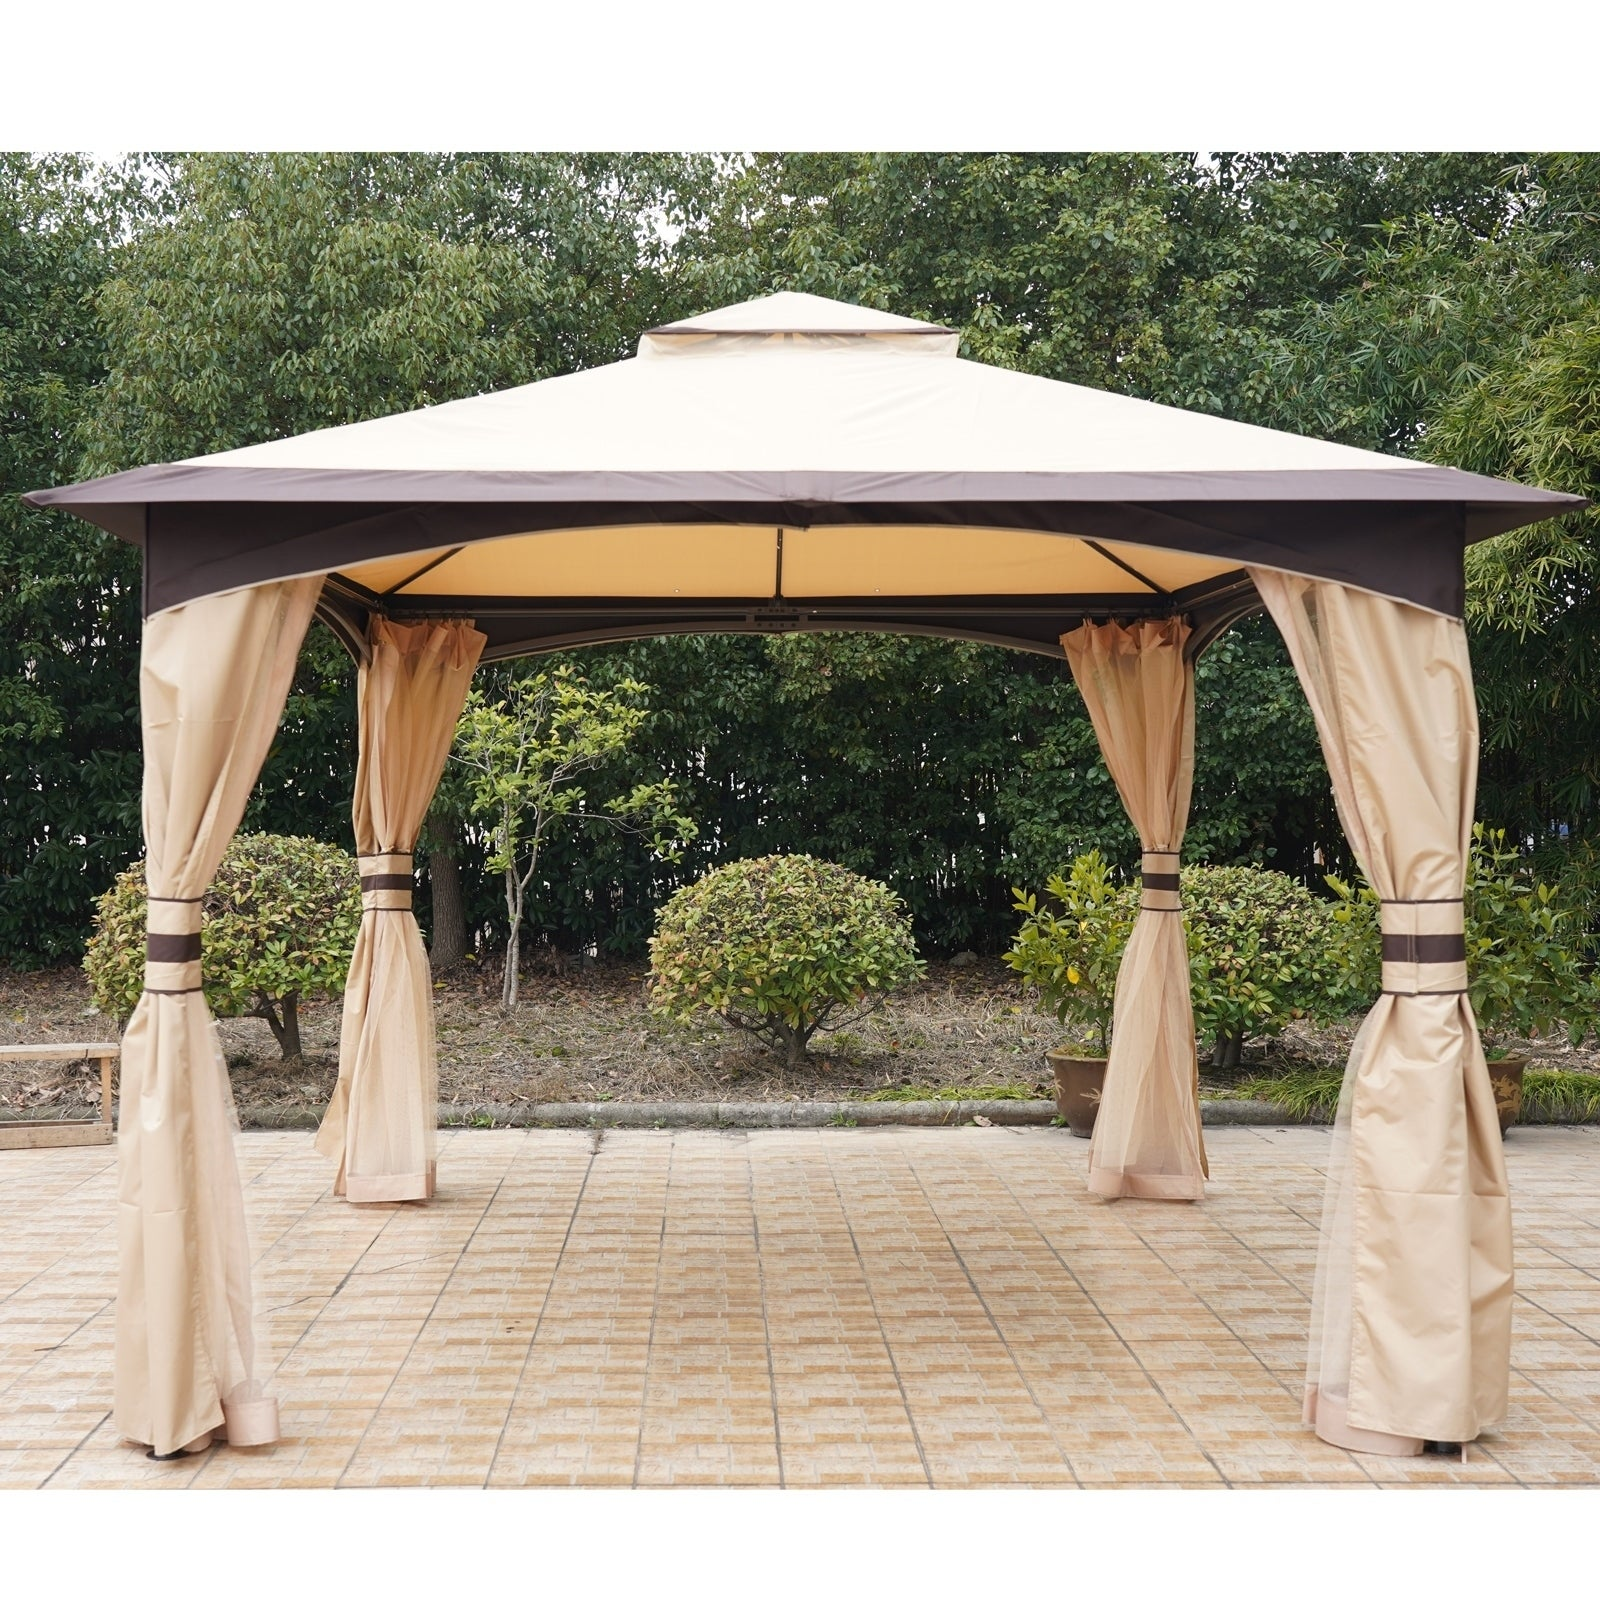 Shop Outsunny 10 X 12 Soft Top Outdoor Gazebo Canopy With Double Roof Beautiful Design With Eaves Mesh Curtain Sidewall Overstock 30827714